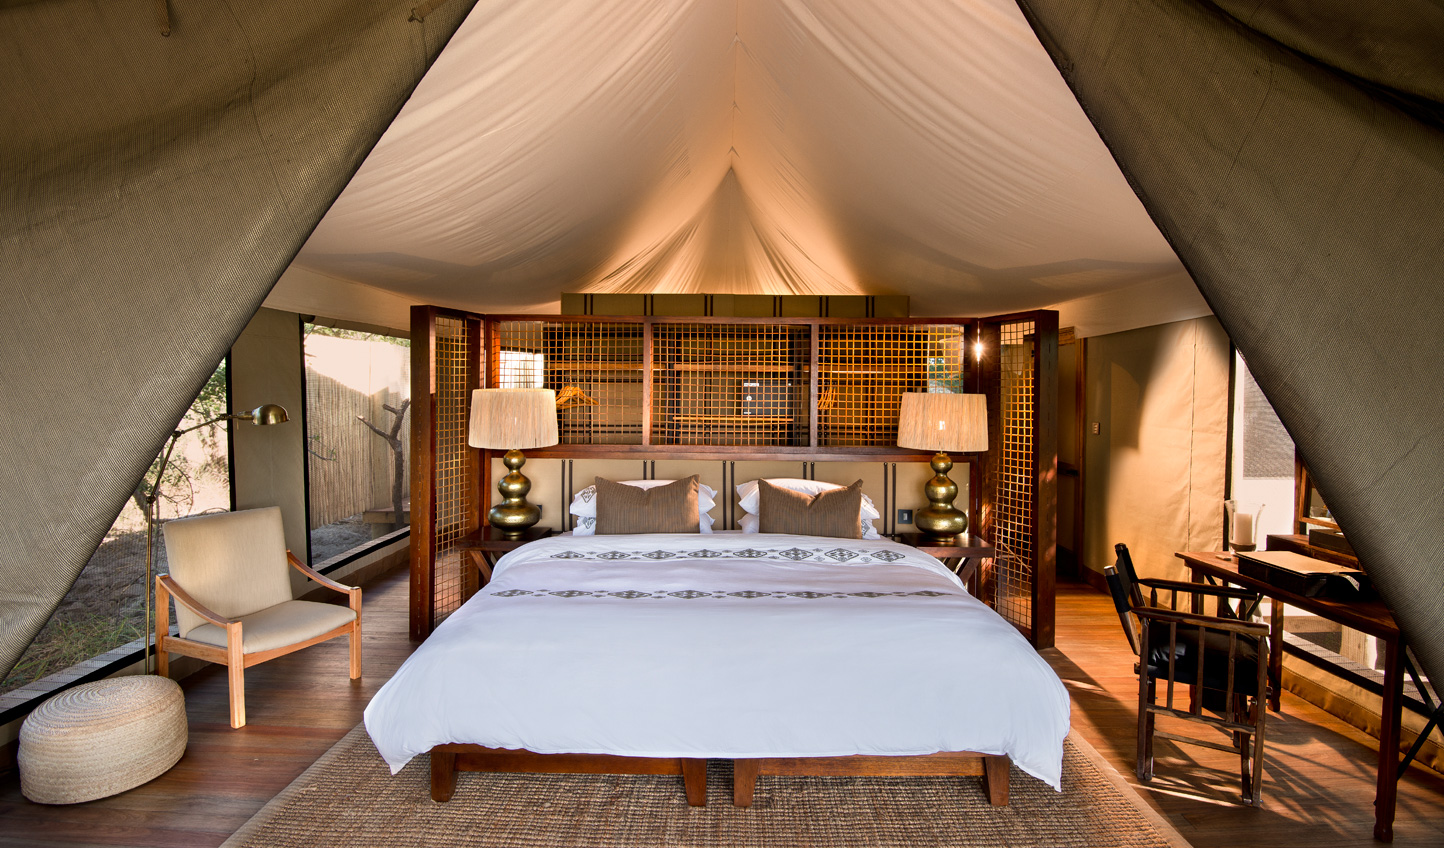 Sleep soundly in your luxury canvas tent